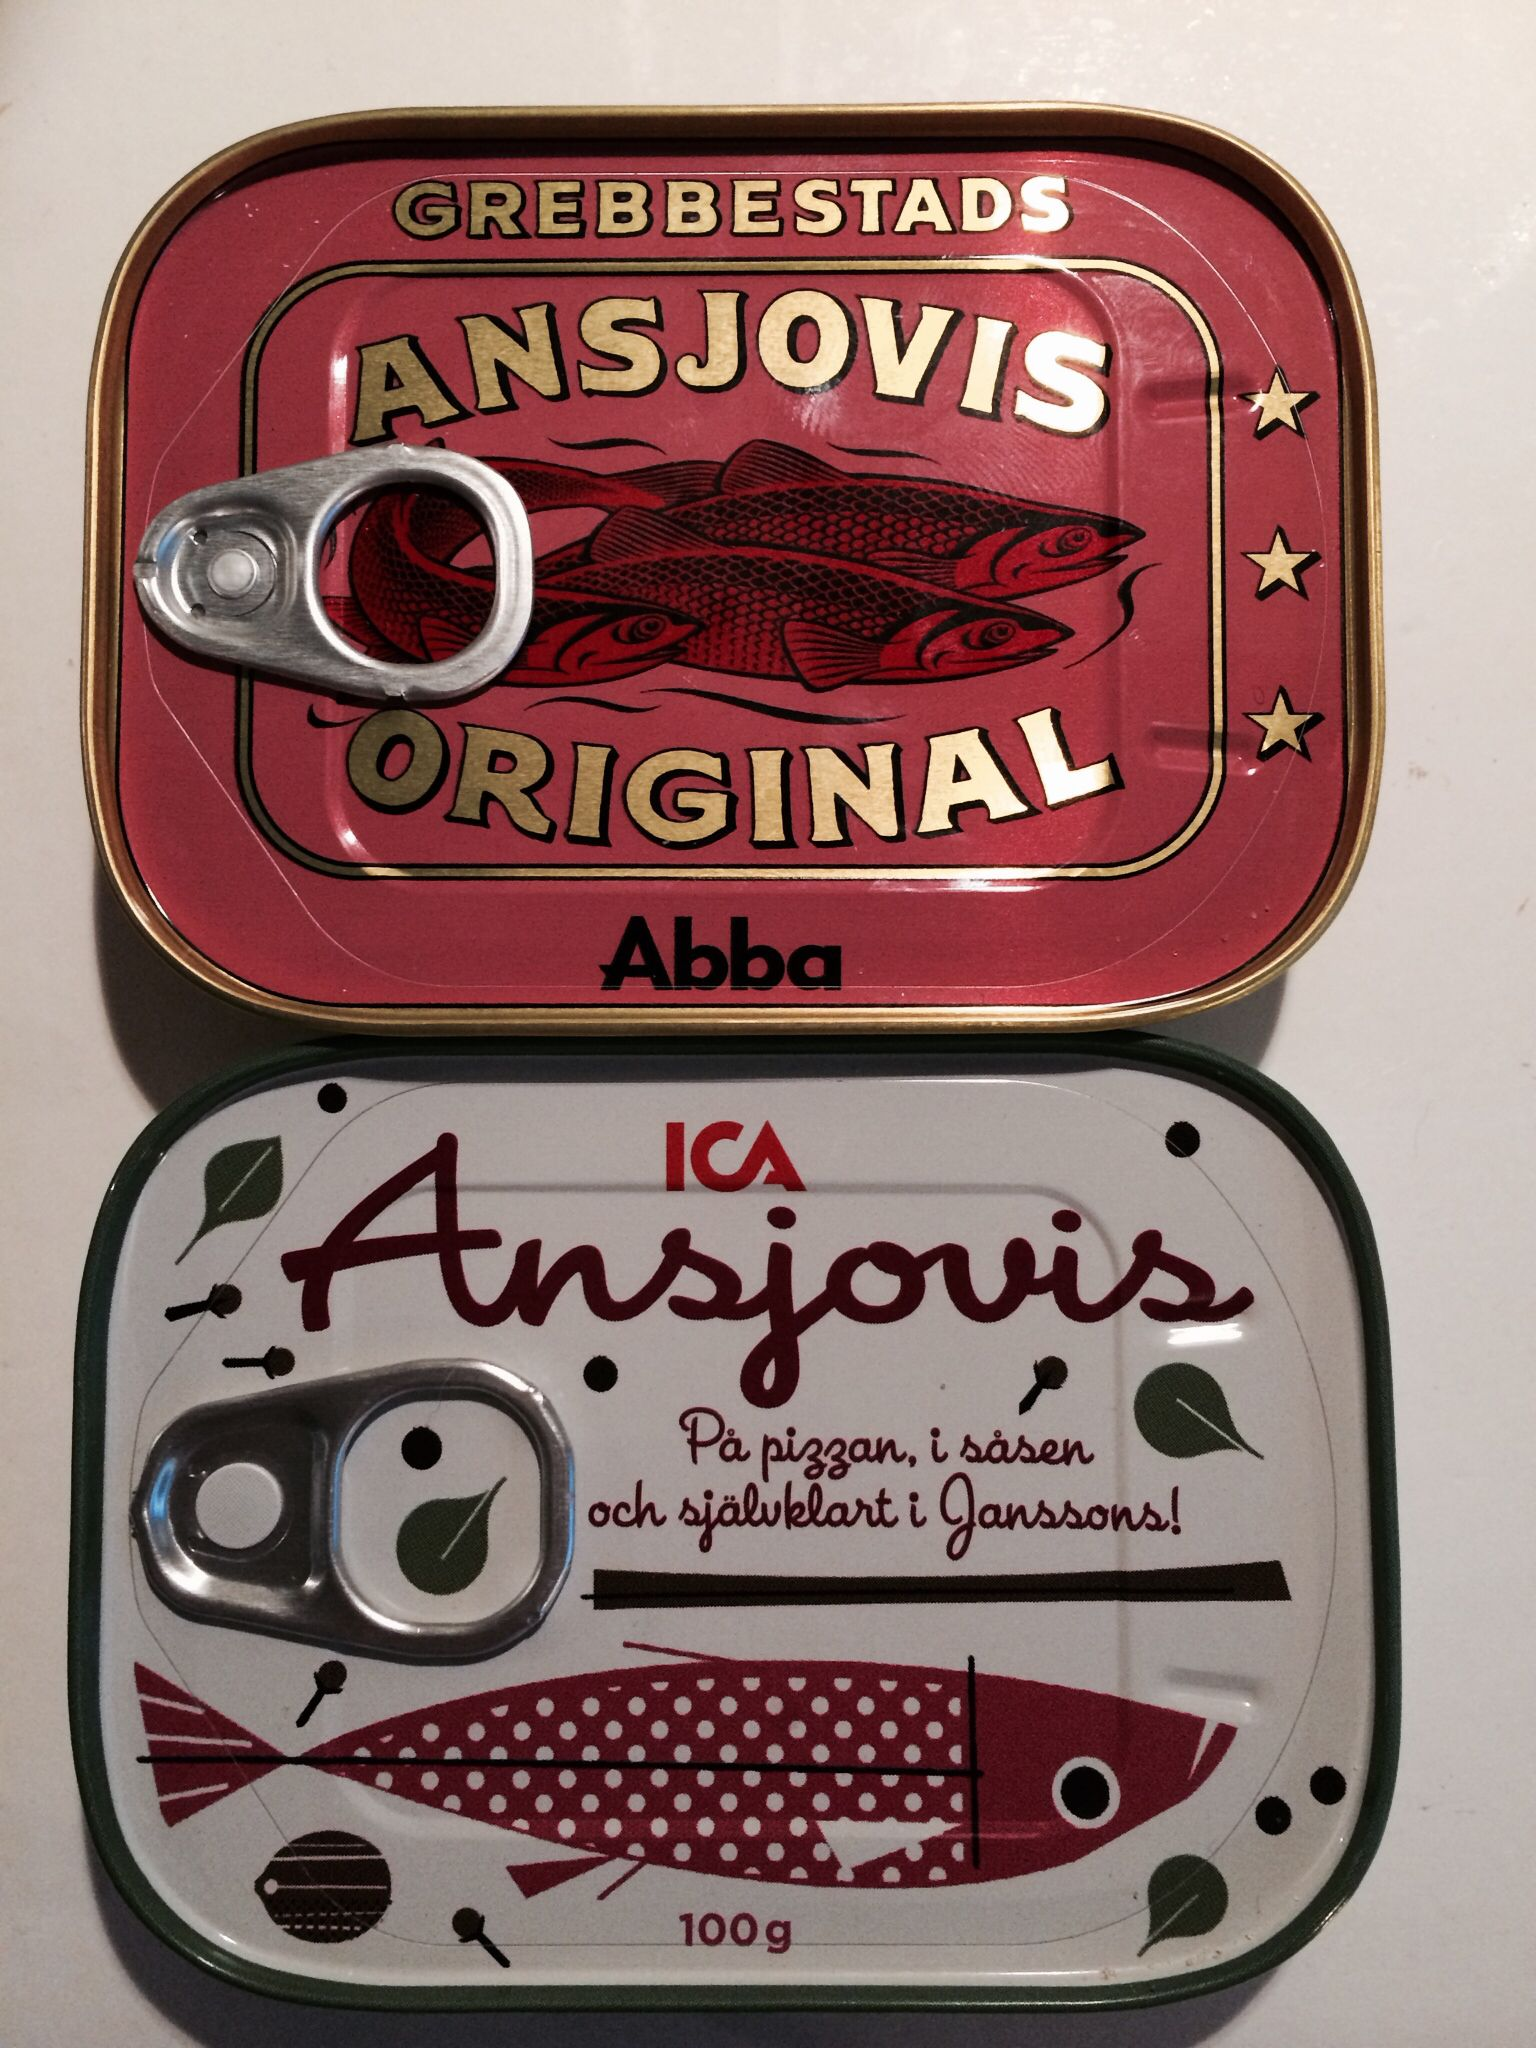 Beautiful anchovies